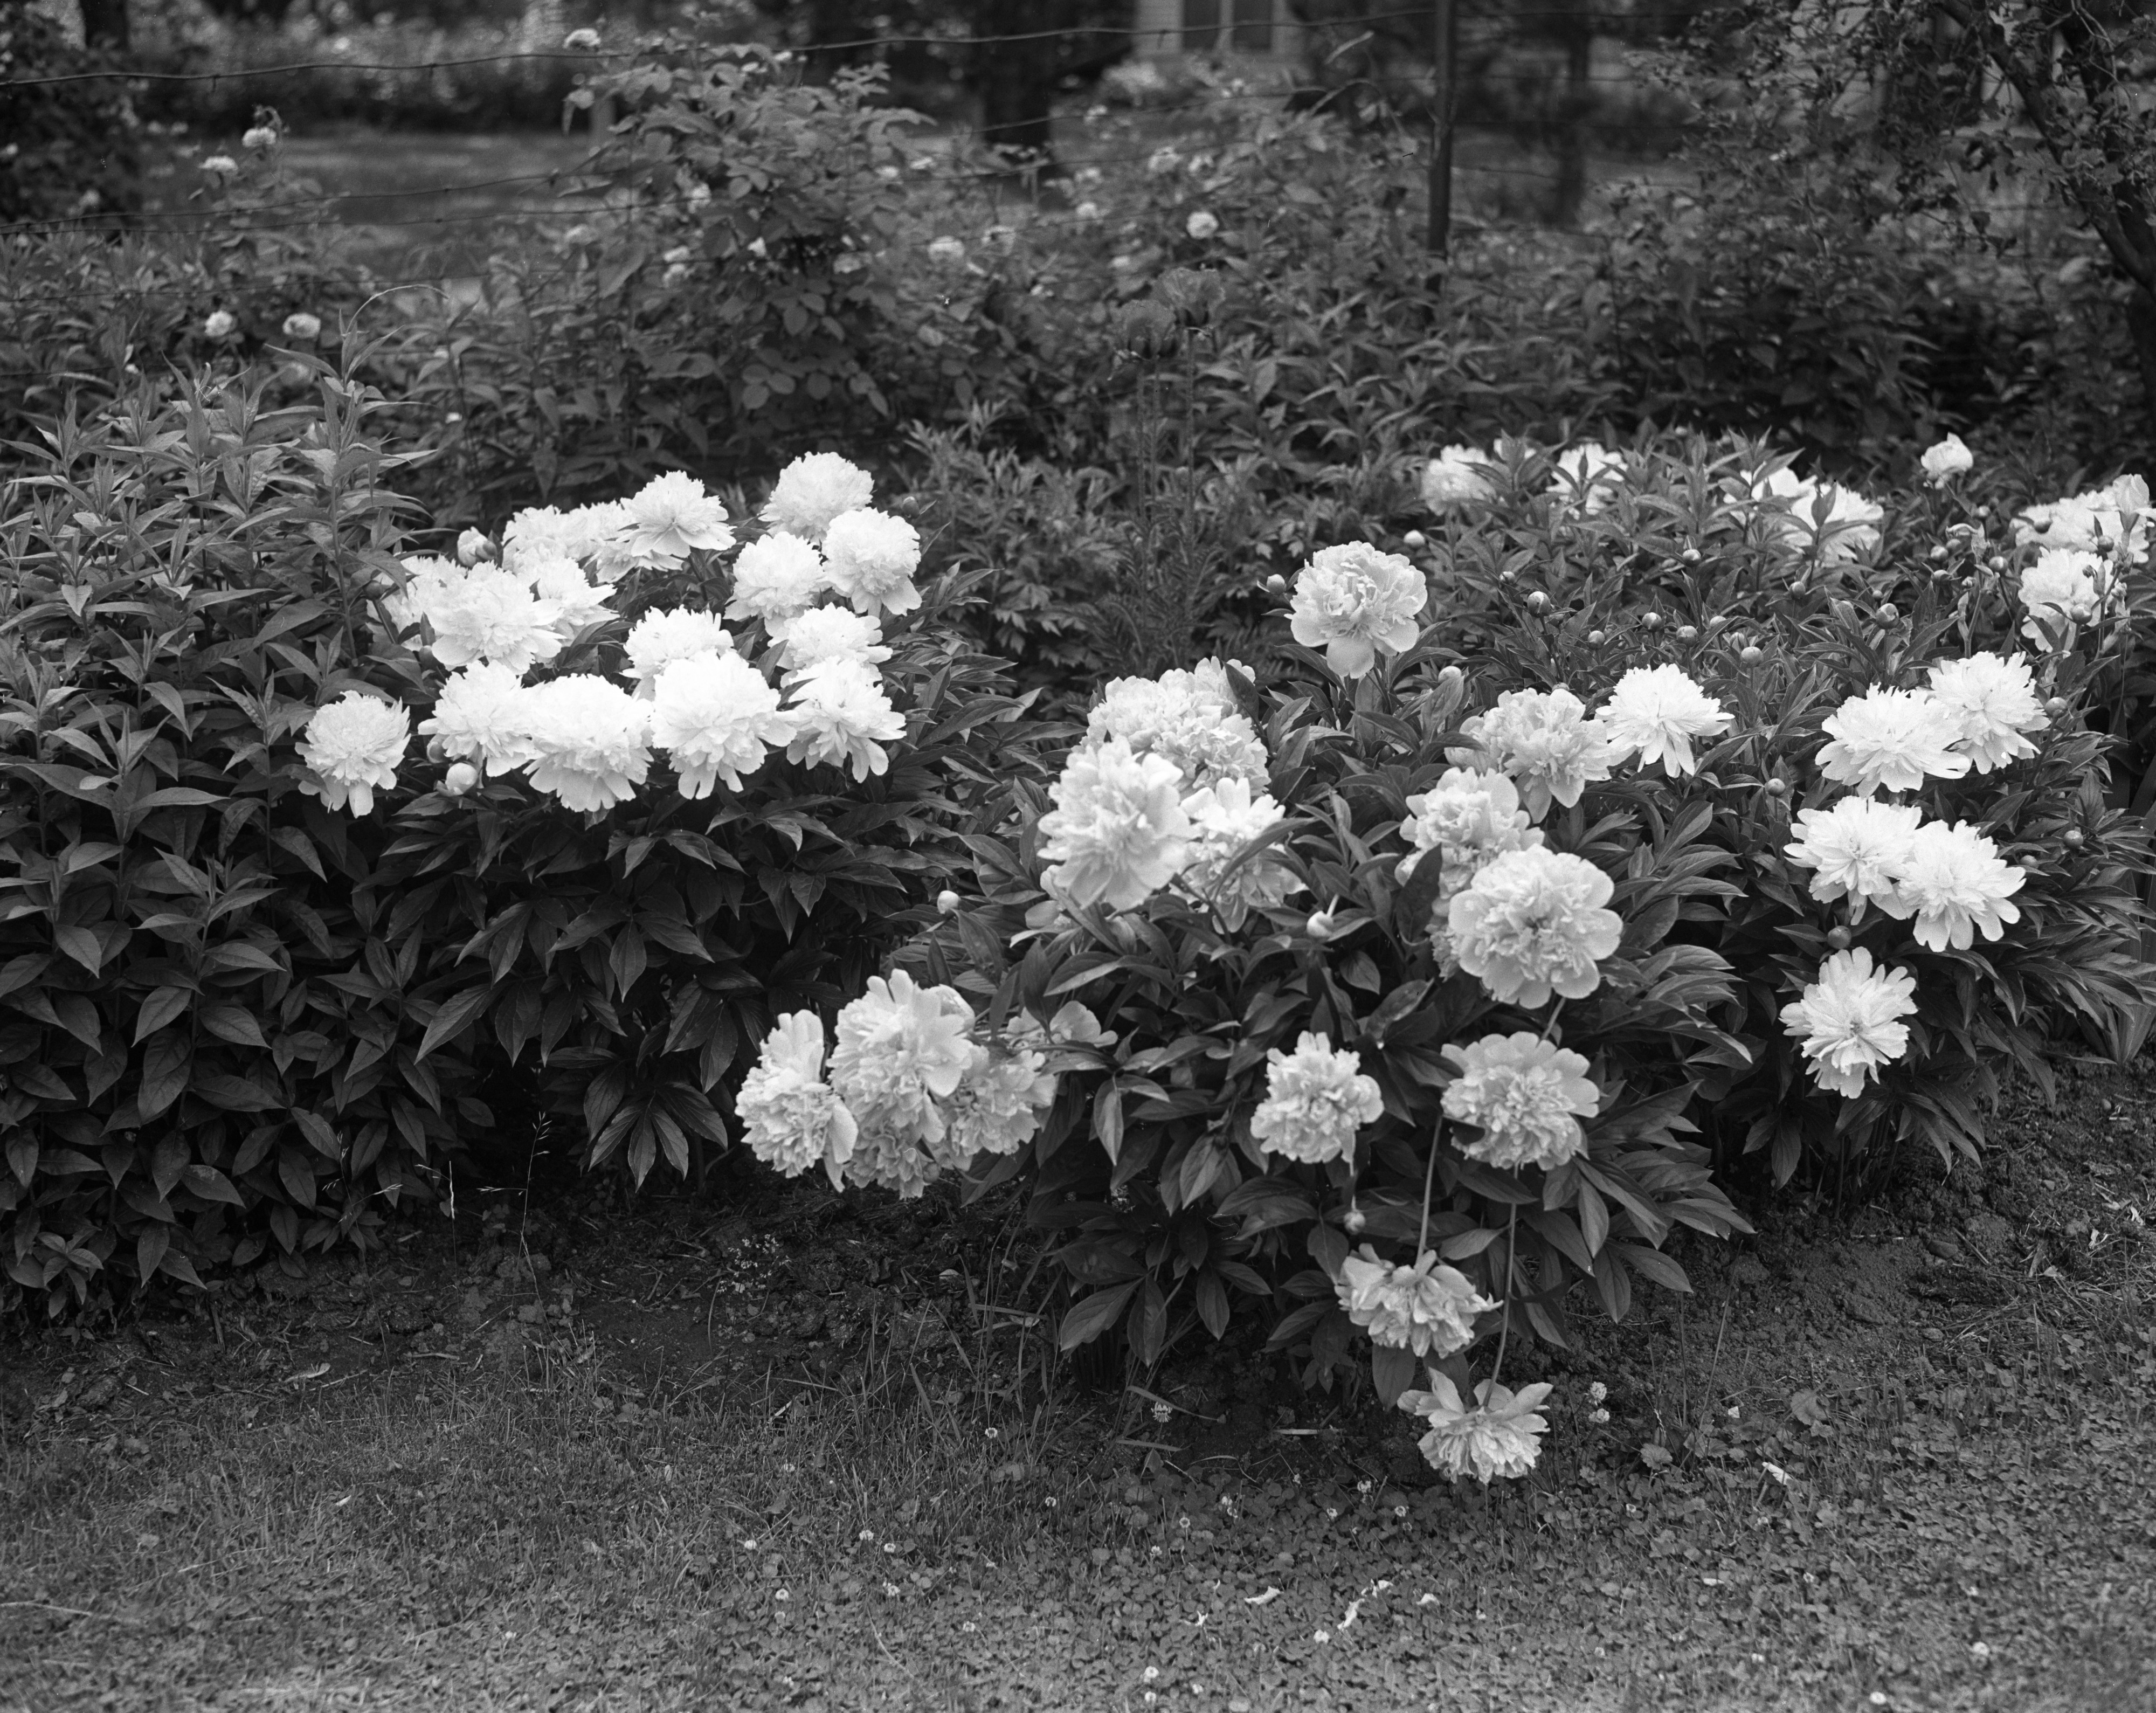 Flowers in Dr. L. P. Hall's Garden, Hill St, June 1941 image